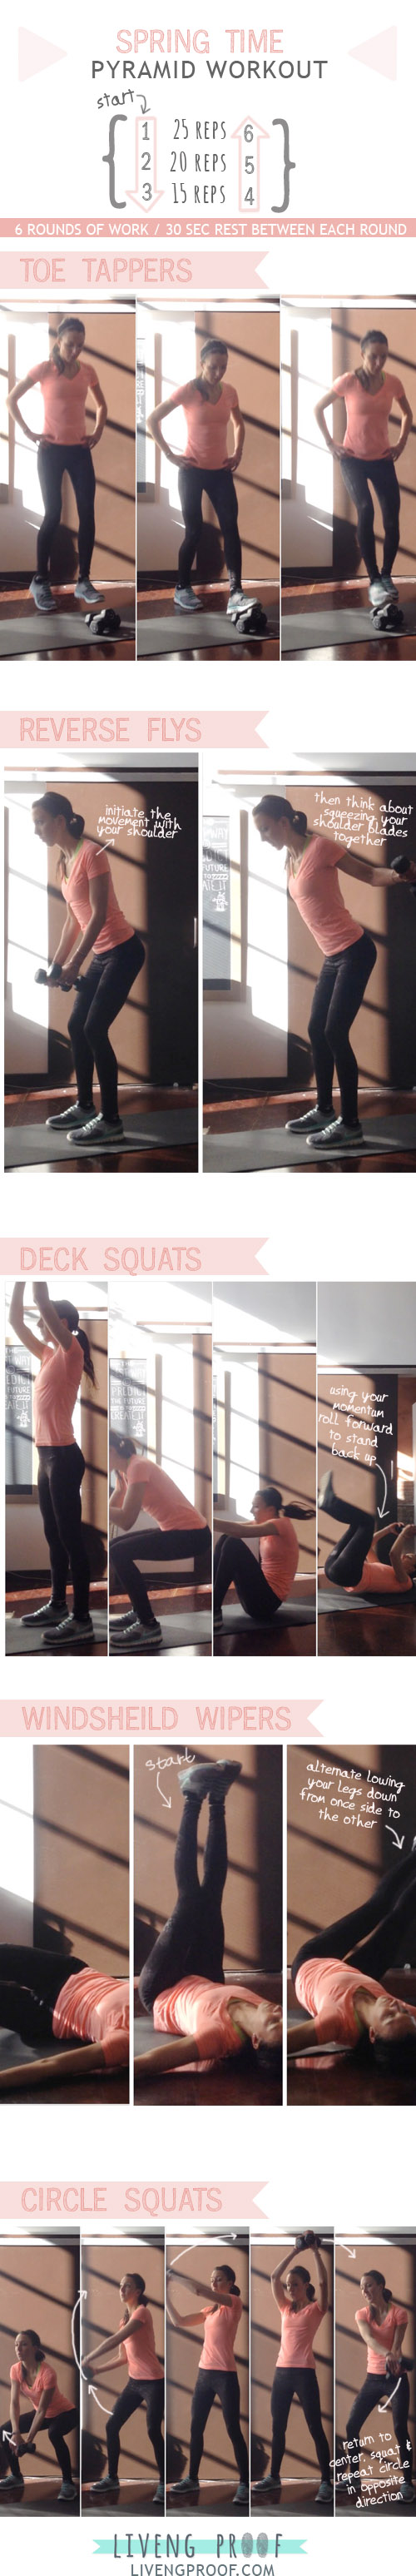 spring time pyramid workout